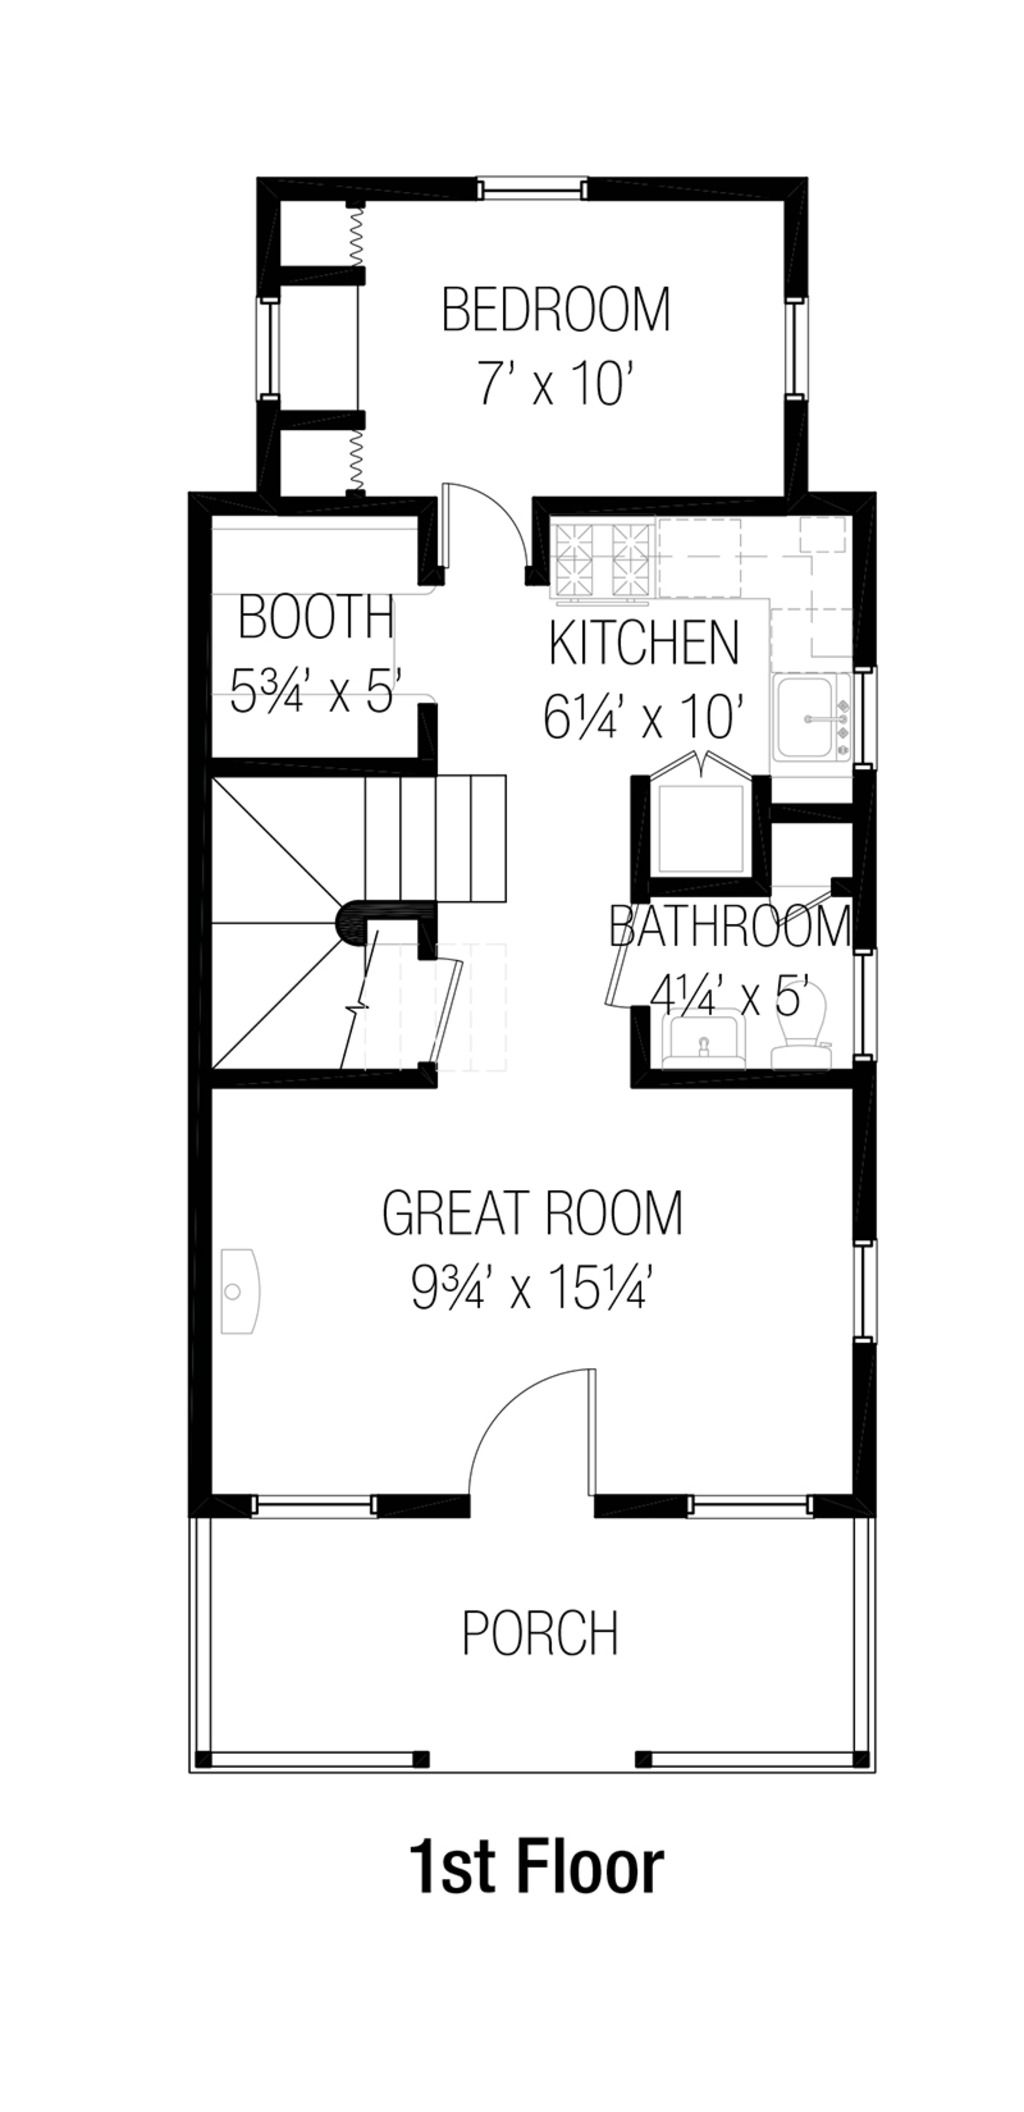 cottage style house plan 3 beds 1 50 baths 874 sq ft plan 915 2